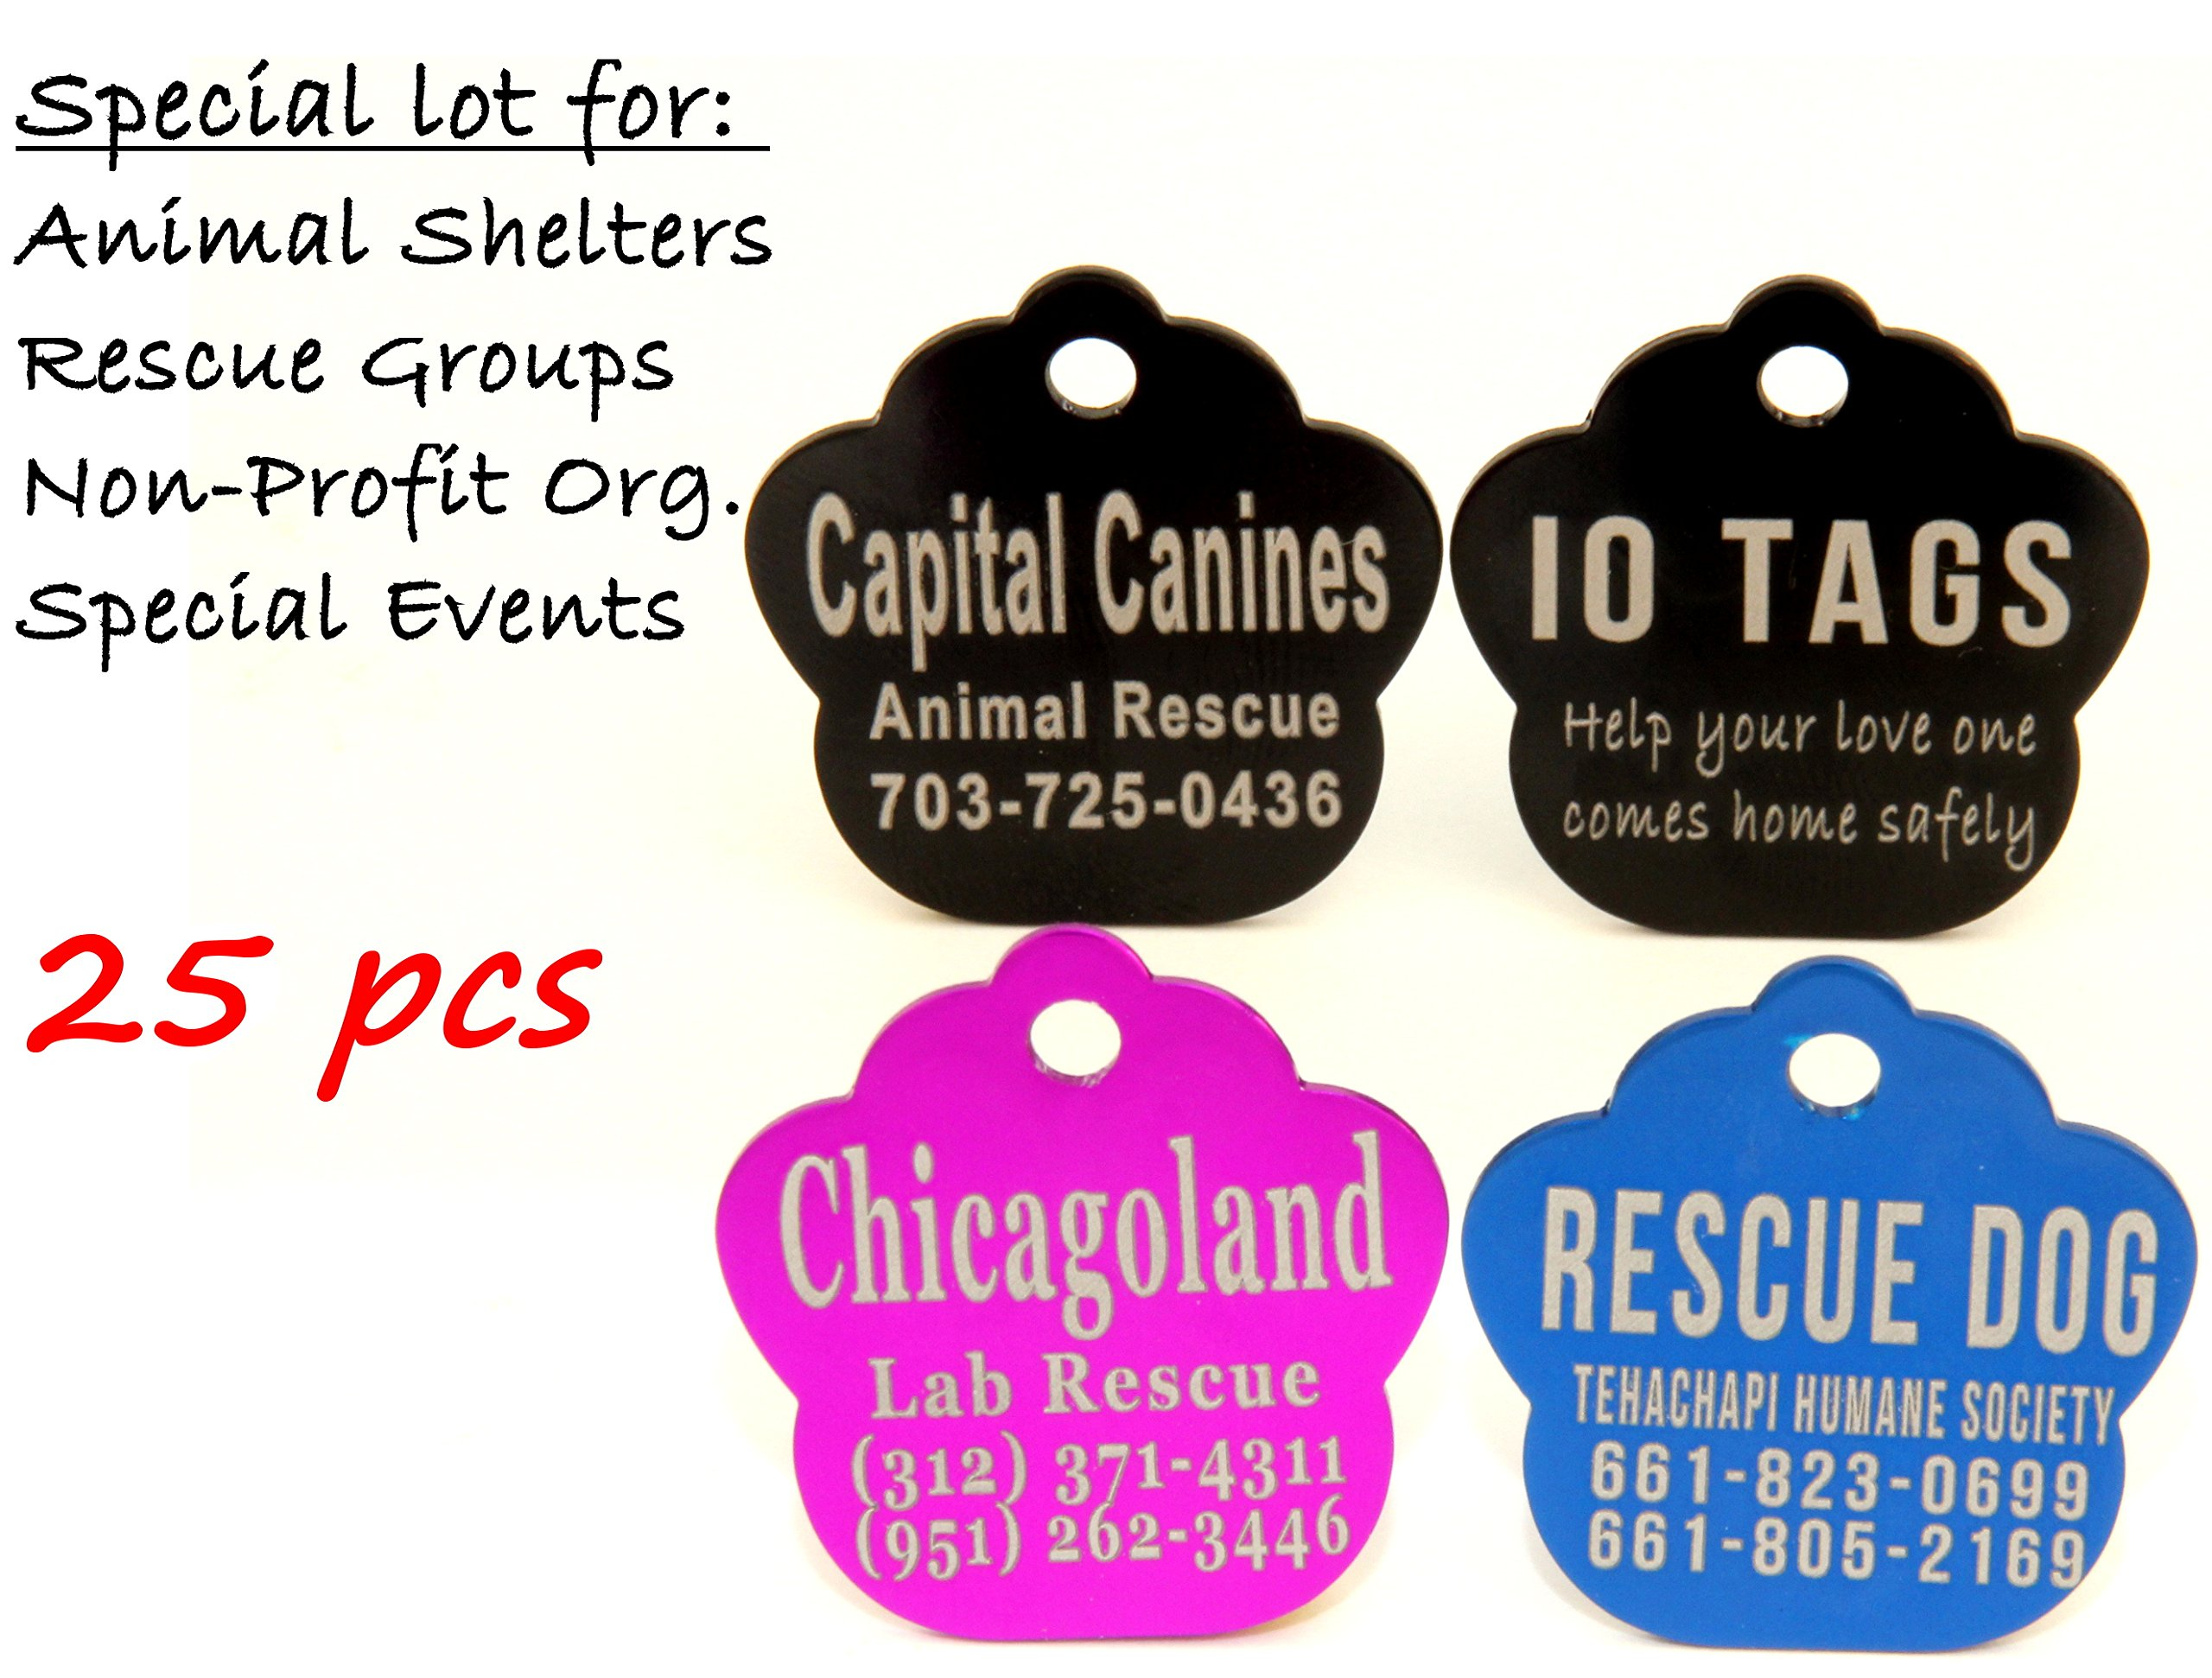 Laser Etched Bulk Lot Pet ID Tag for Dog & Cat Shelters, Rescues, Non Profits Org. and Special Events (Lot of 25)